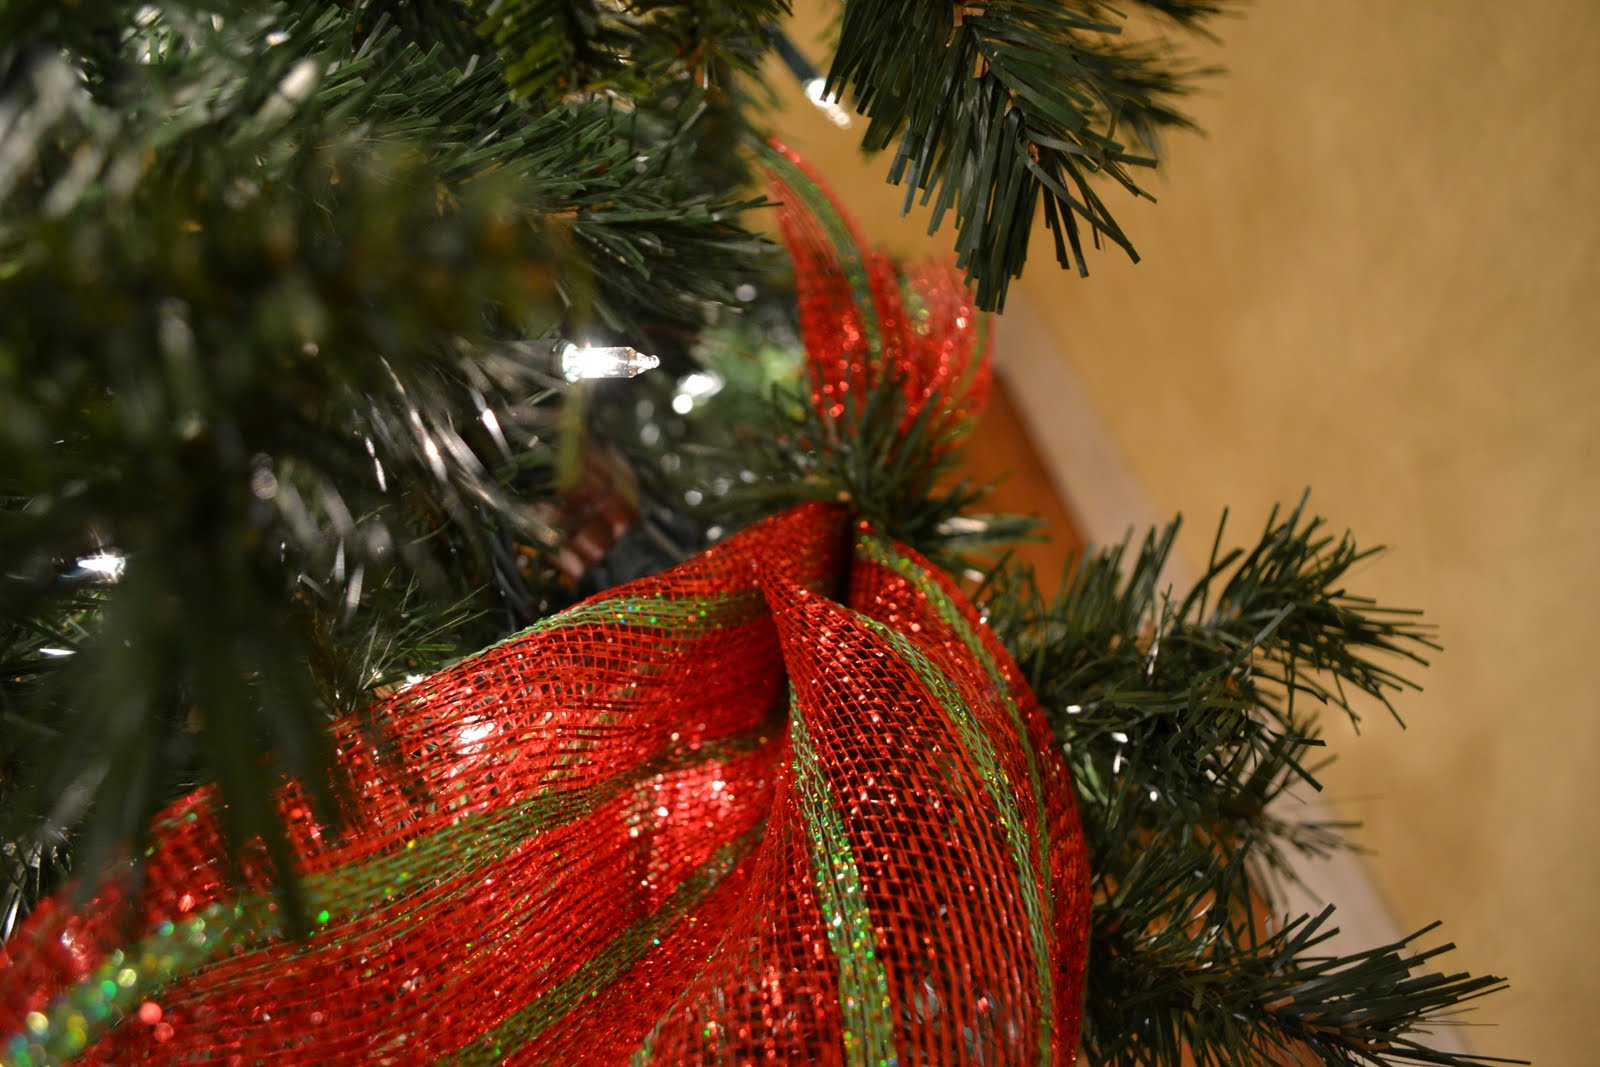 Kristen's Creations: Decorating A Christmas Tree With Mesh